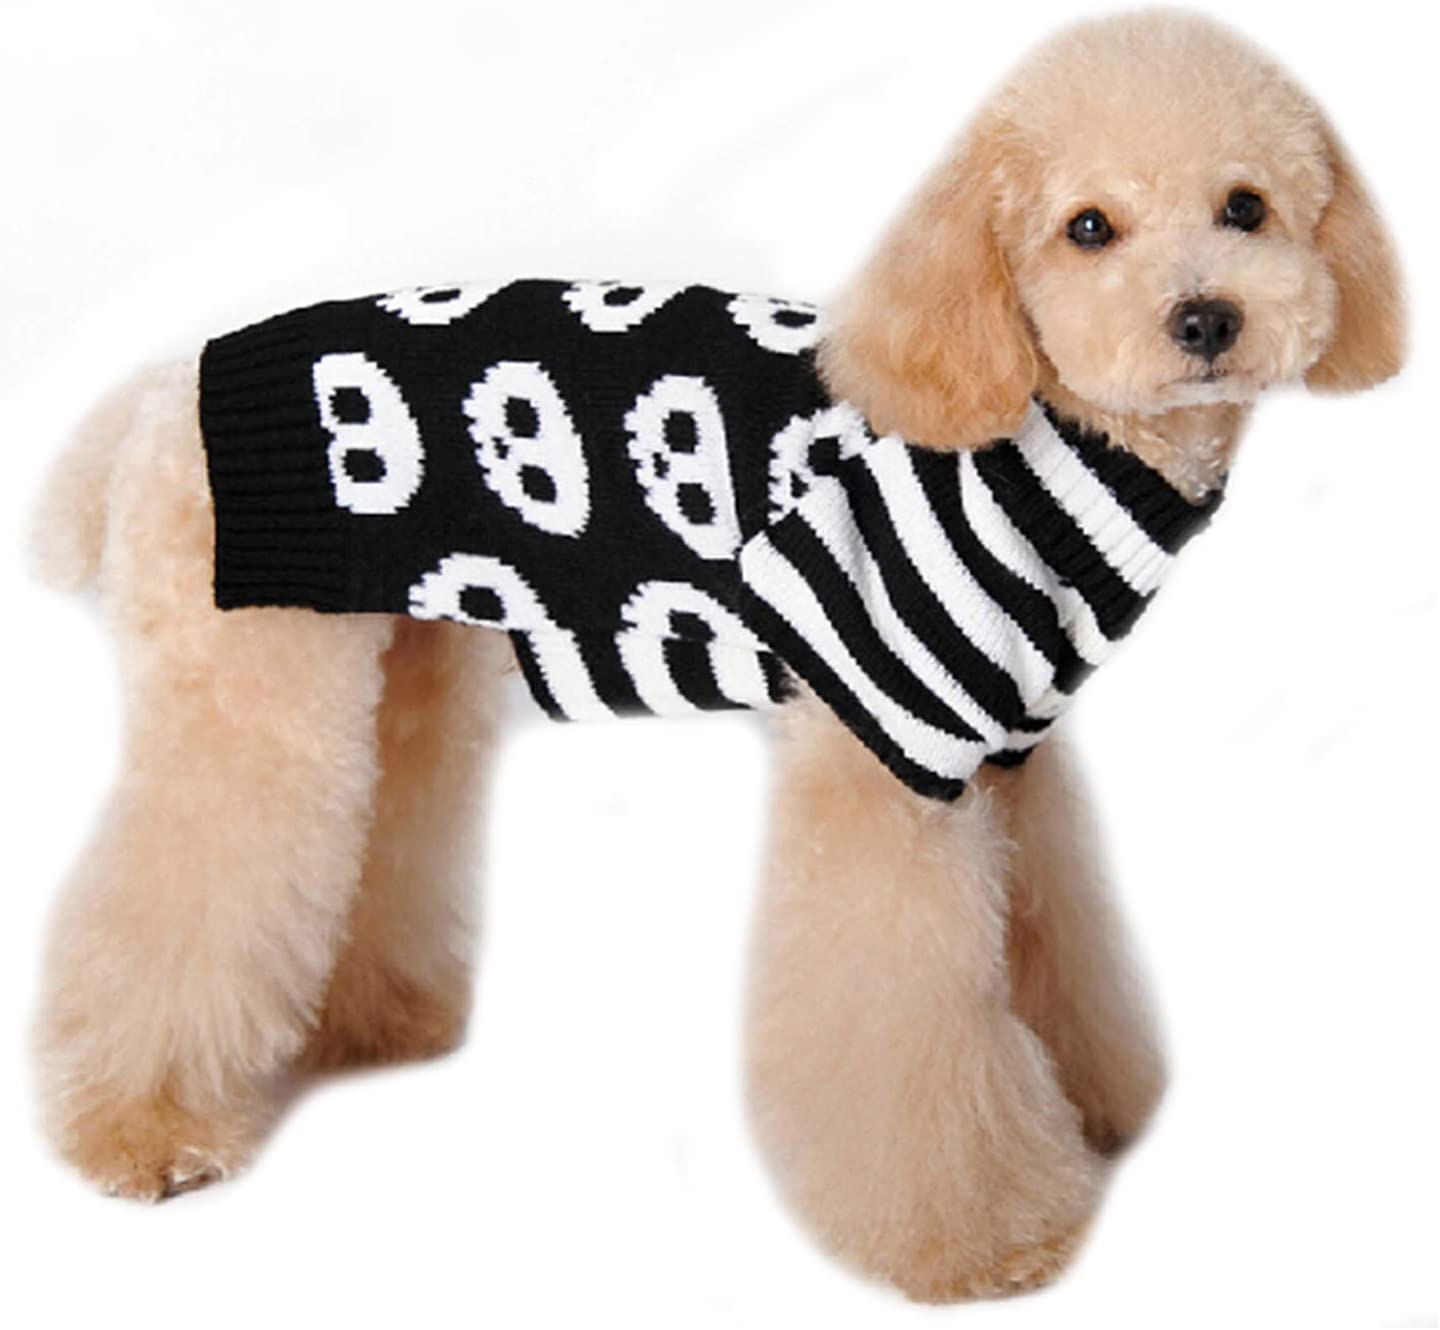 Skull Halloween Pet Puppy Clothes Warm Festival Knitwear Sweaters Dog Apparel for Dogs Cats PETCARE Dog Sweaters